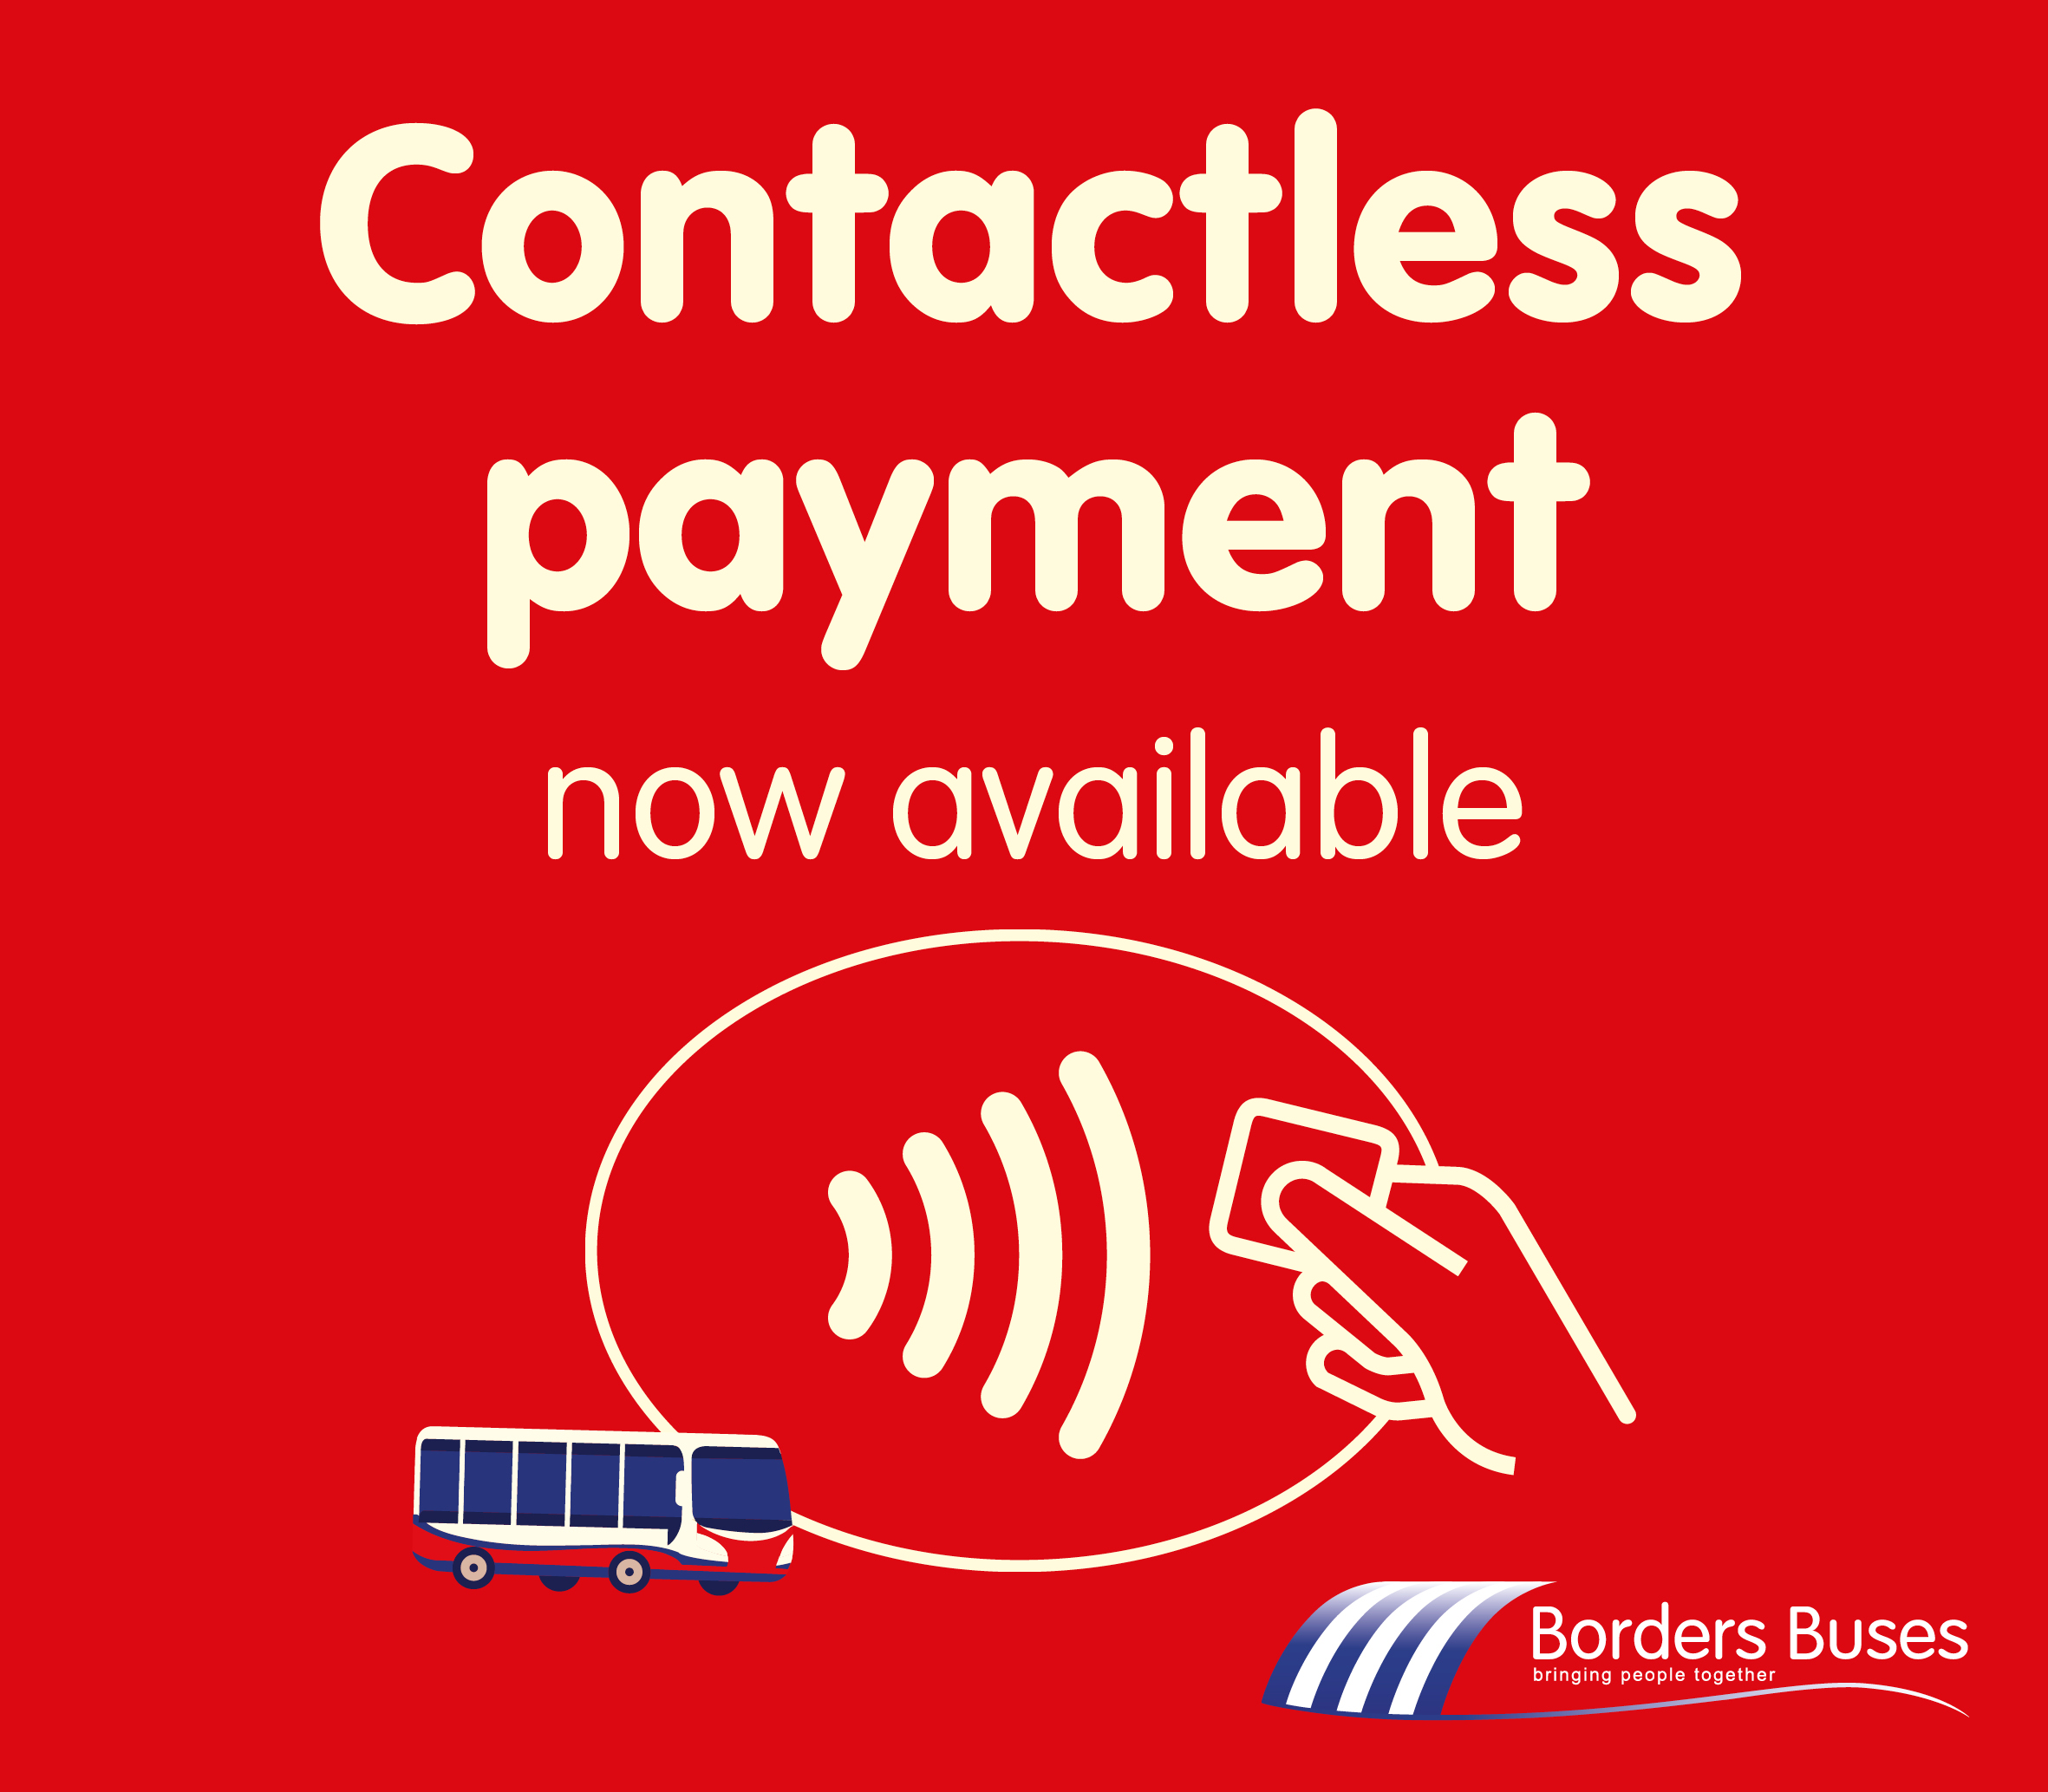 Contactless symbol (hand holding card with wireless curved lines coming out) next to icon of small red bus